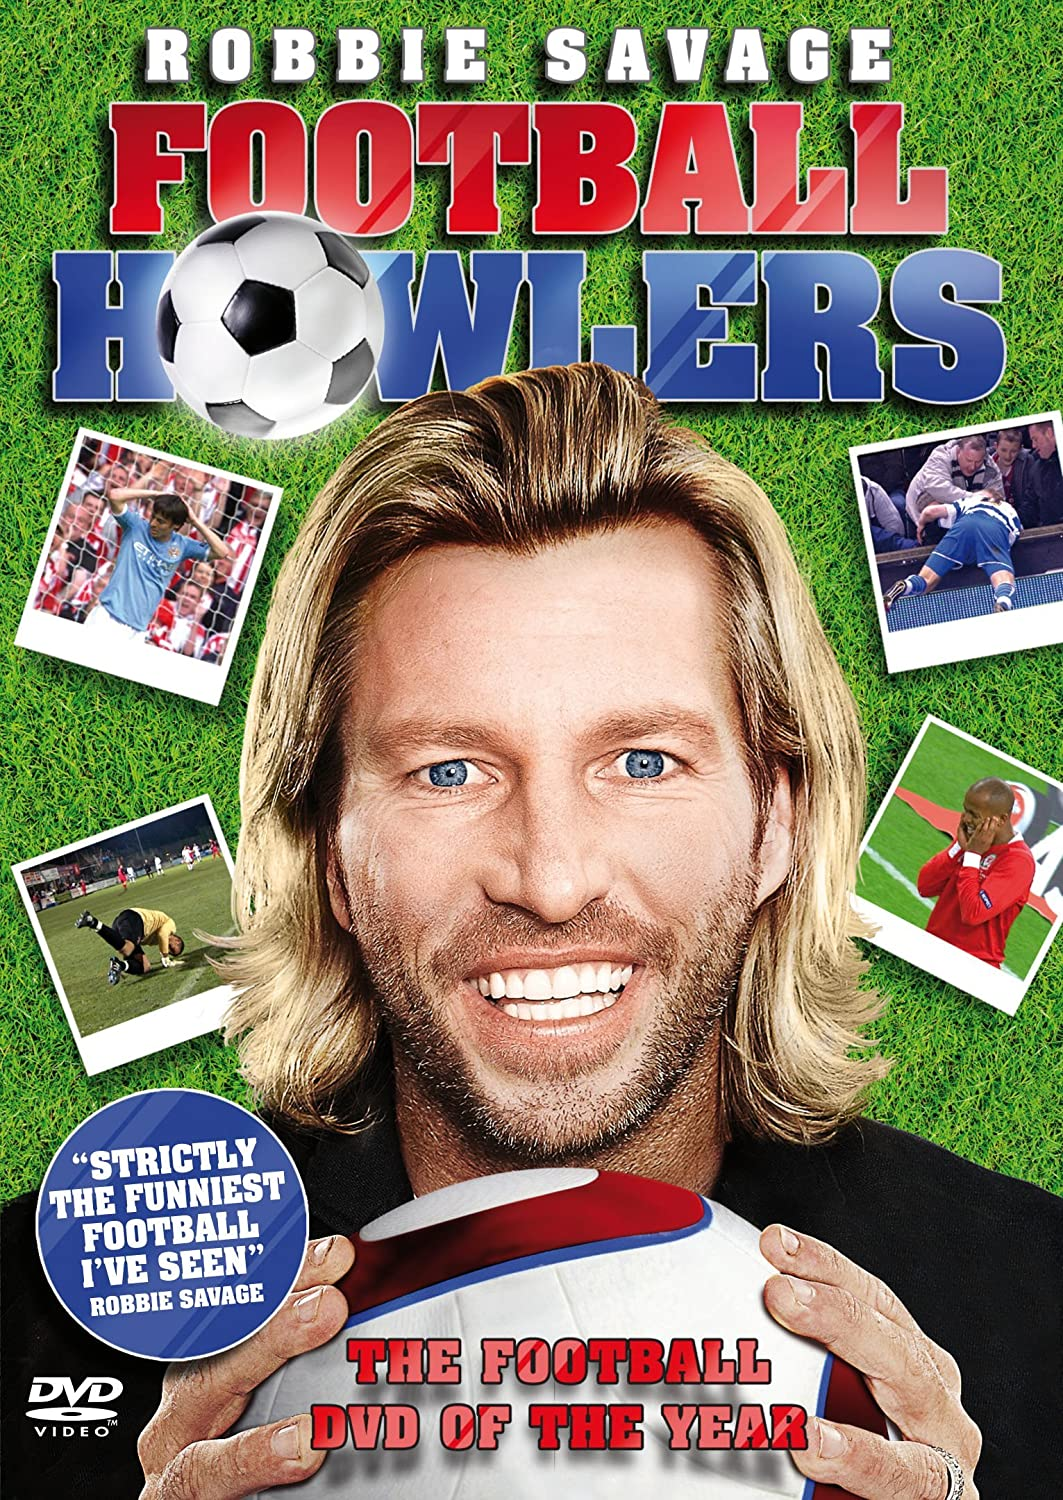 Robbie Savage Football Howlers Dvd Amazon Co Uk Unknown Actor Dvd Blu Ray